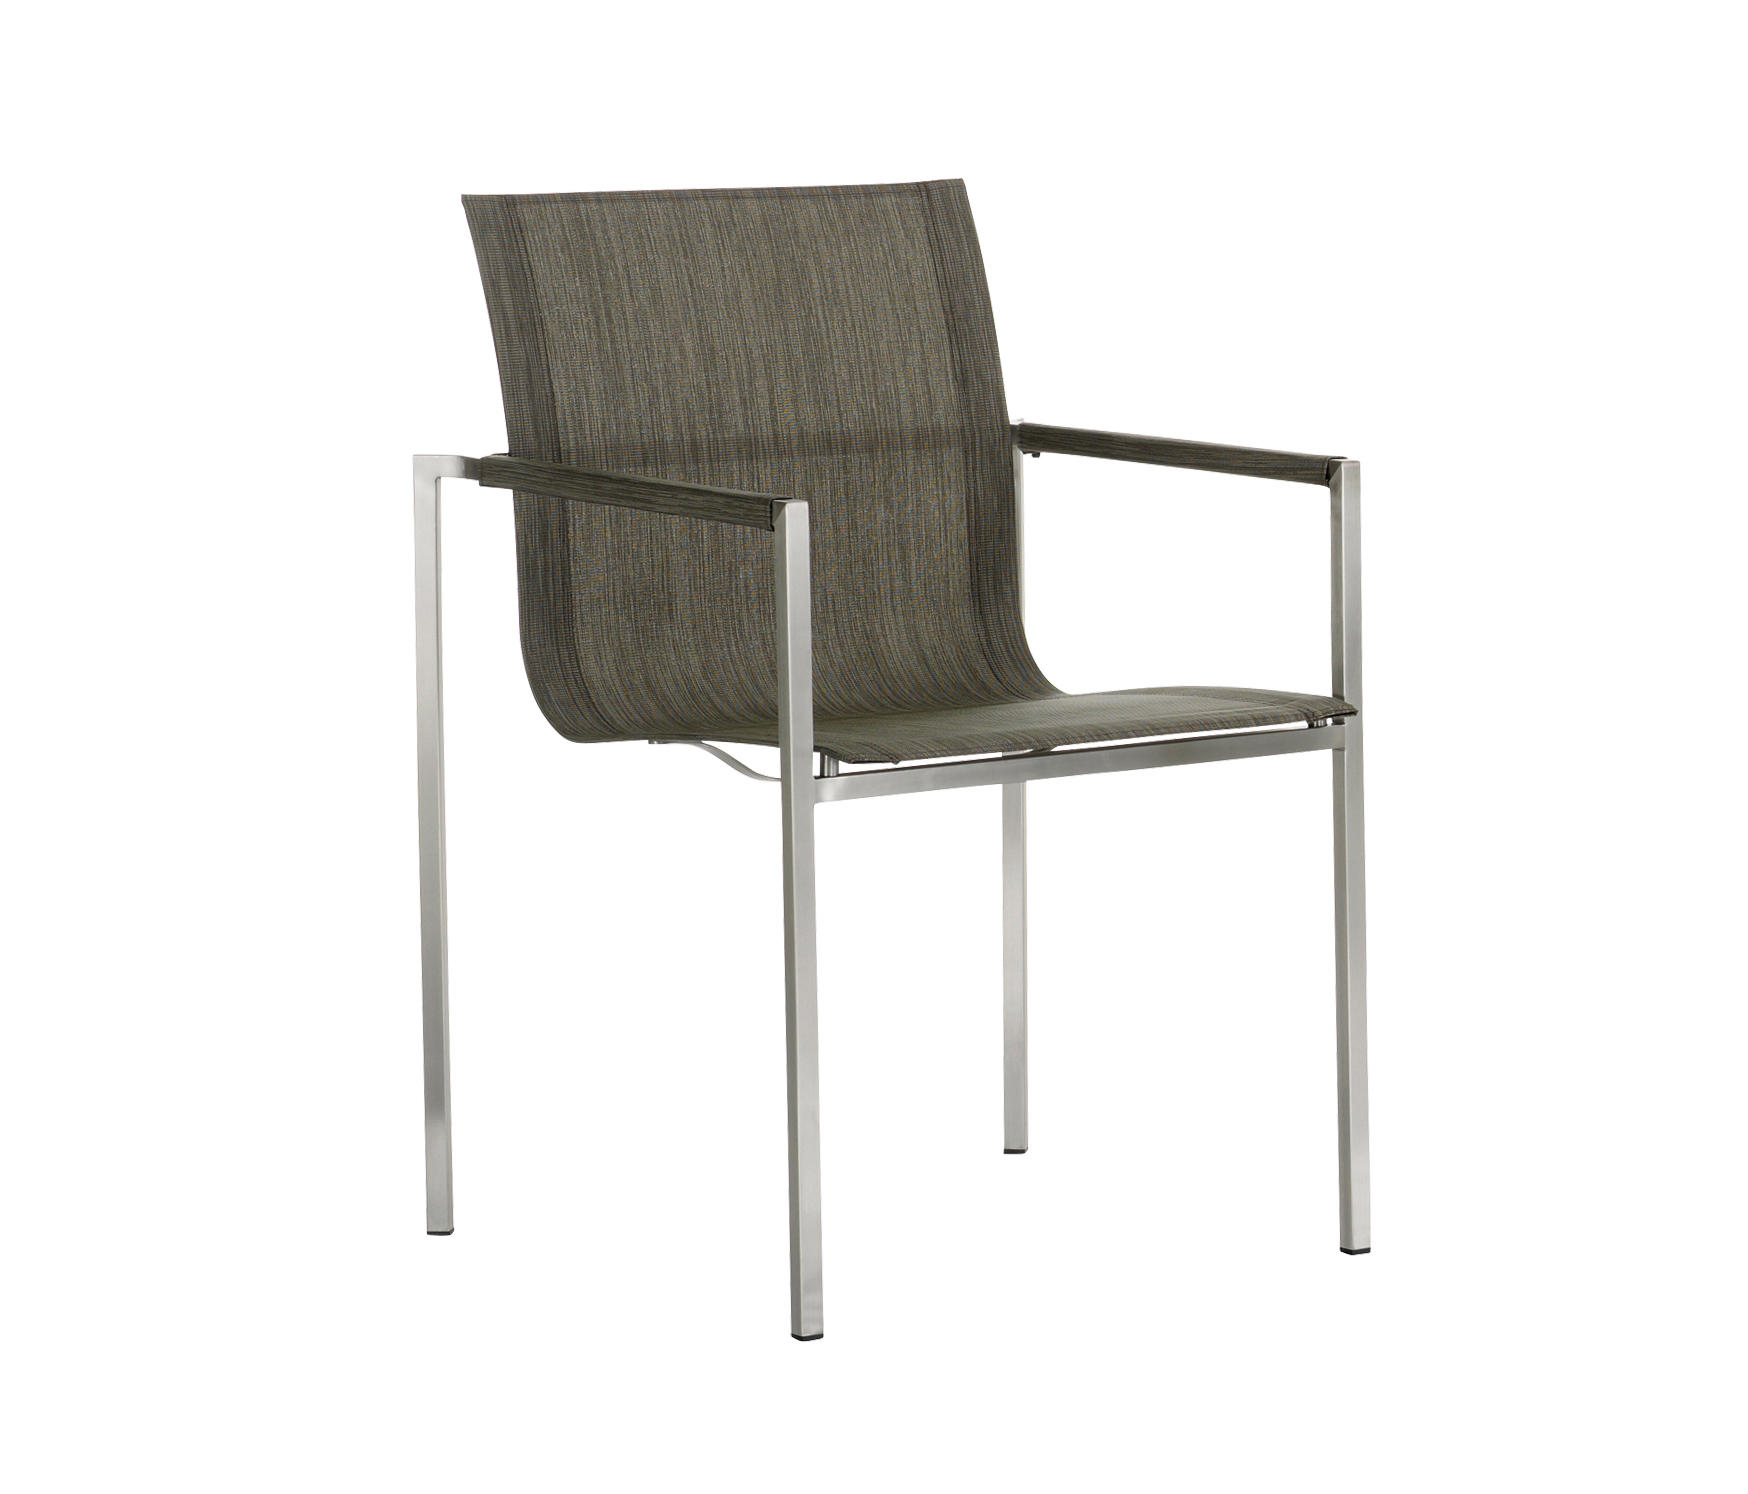 Table De Jardin Trafic > Pure Stainless Steel Stacking Chair Garden Chairs From Solpuri